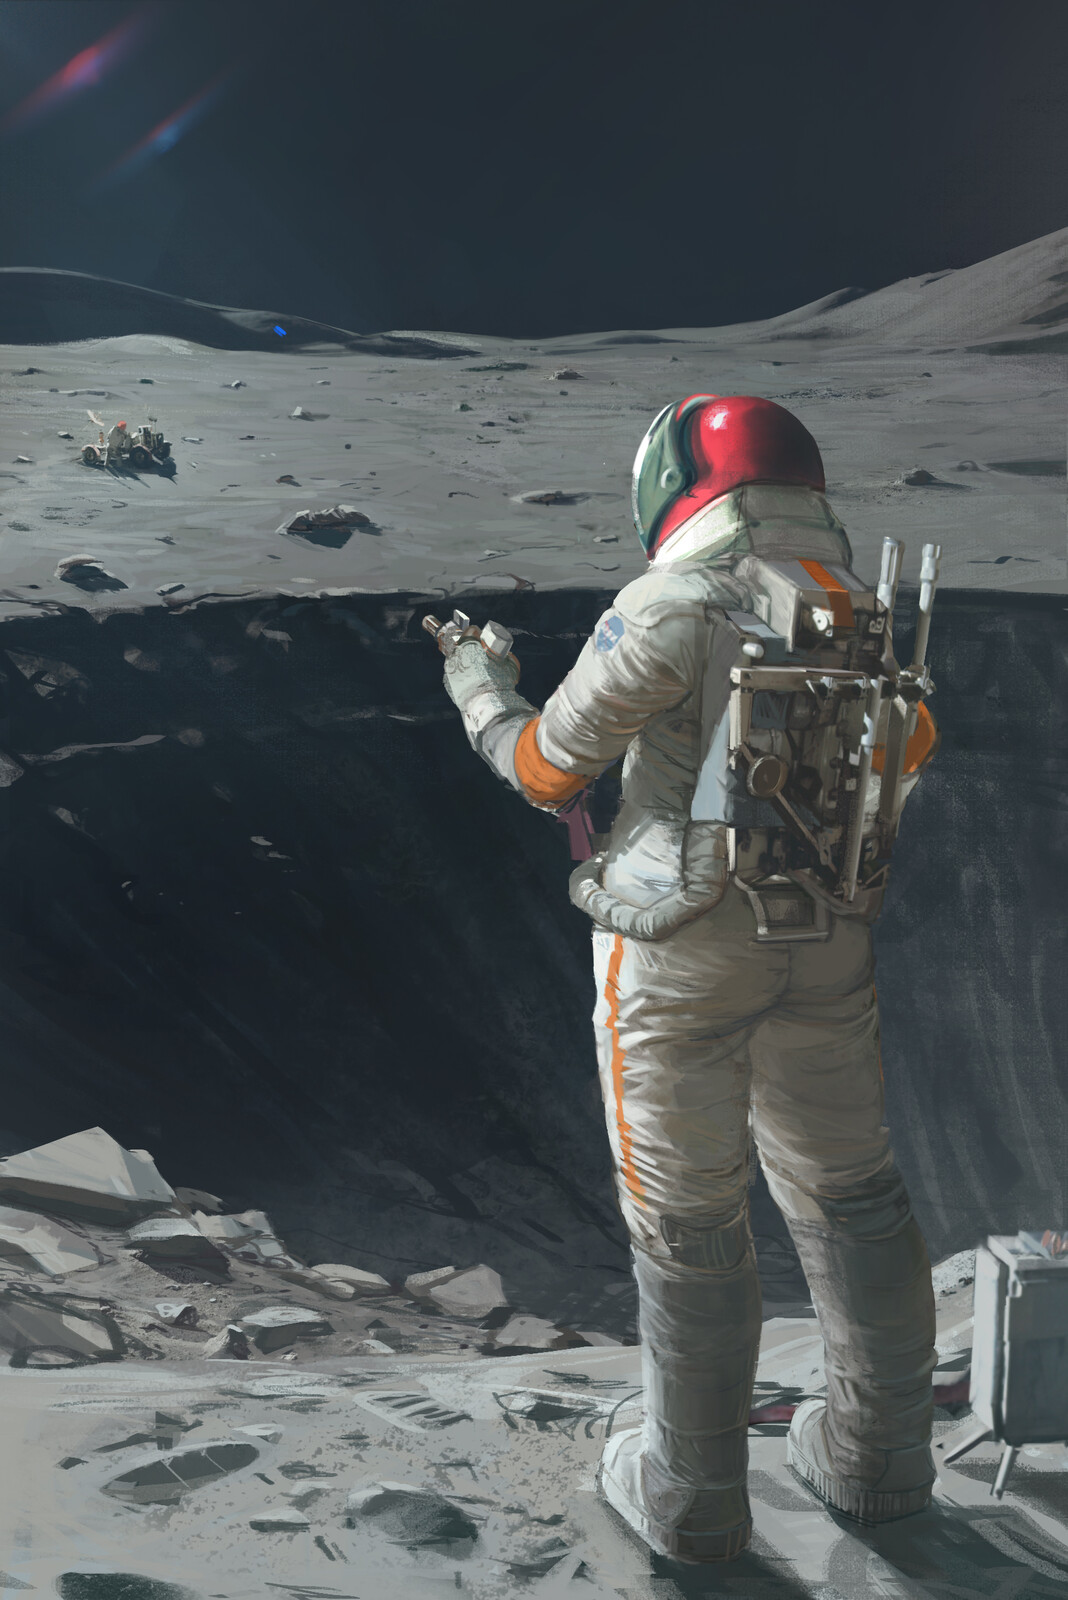 space painting in space on the moon. space.